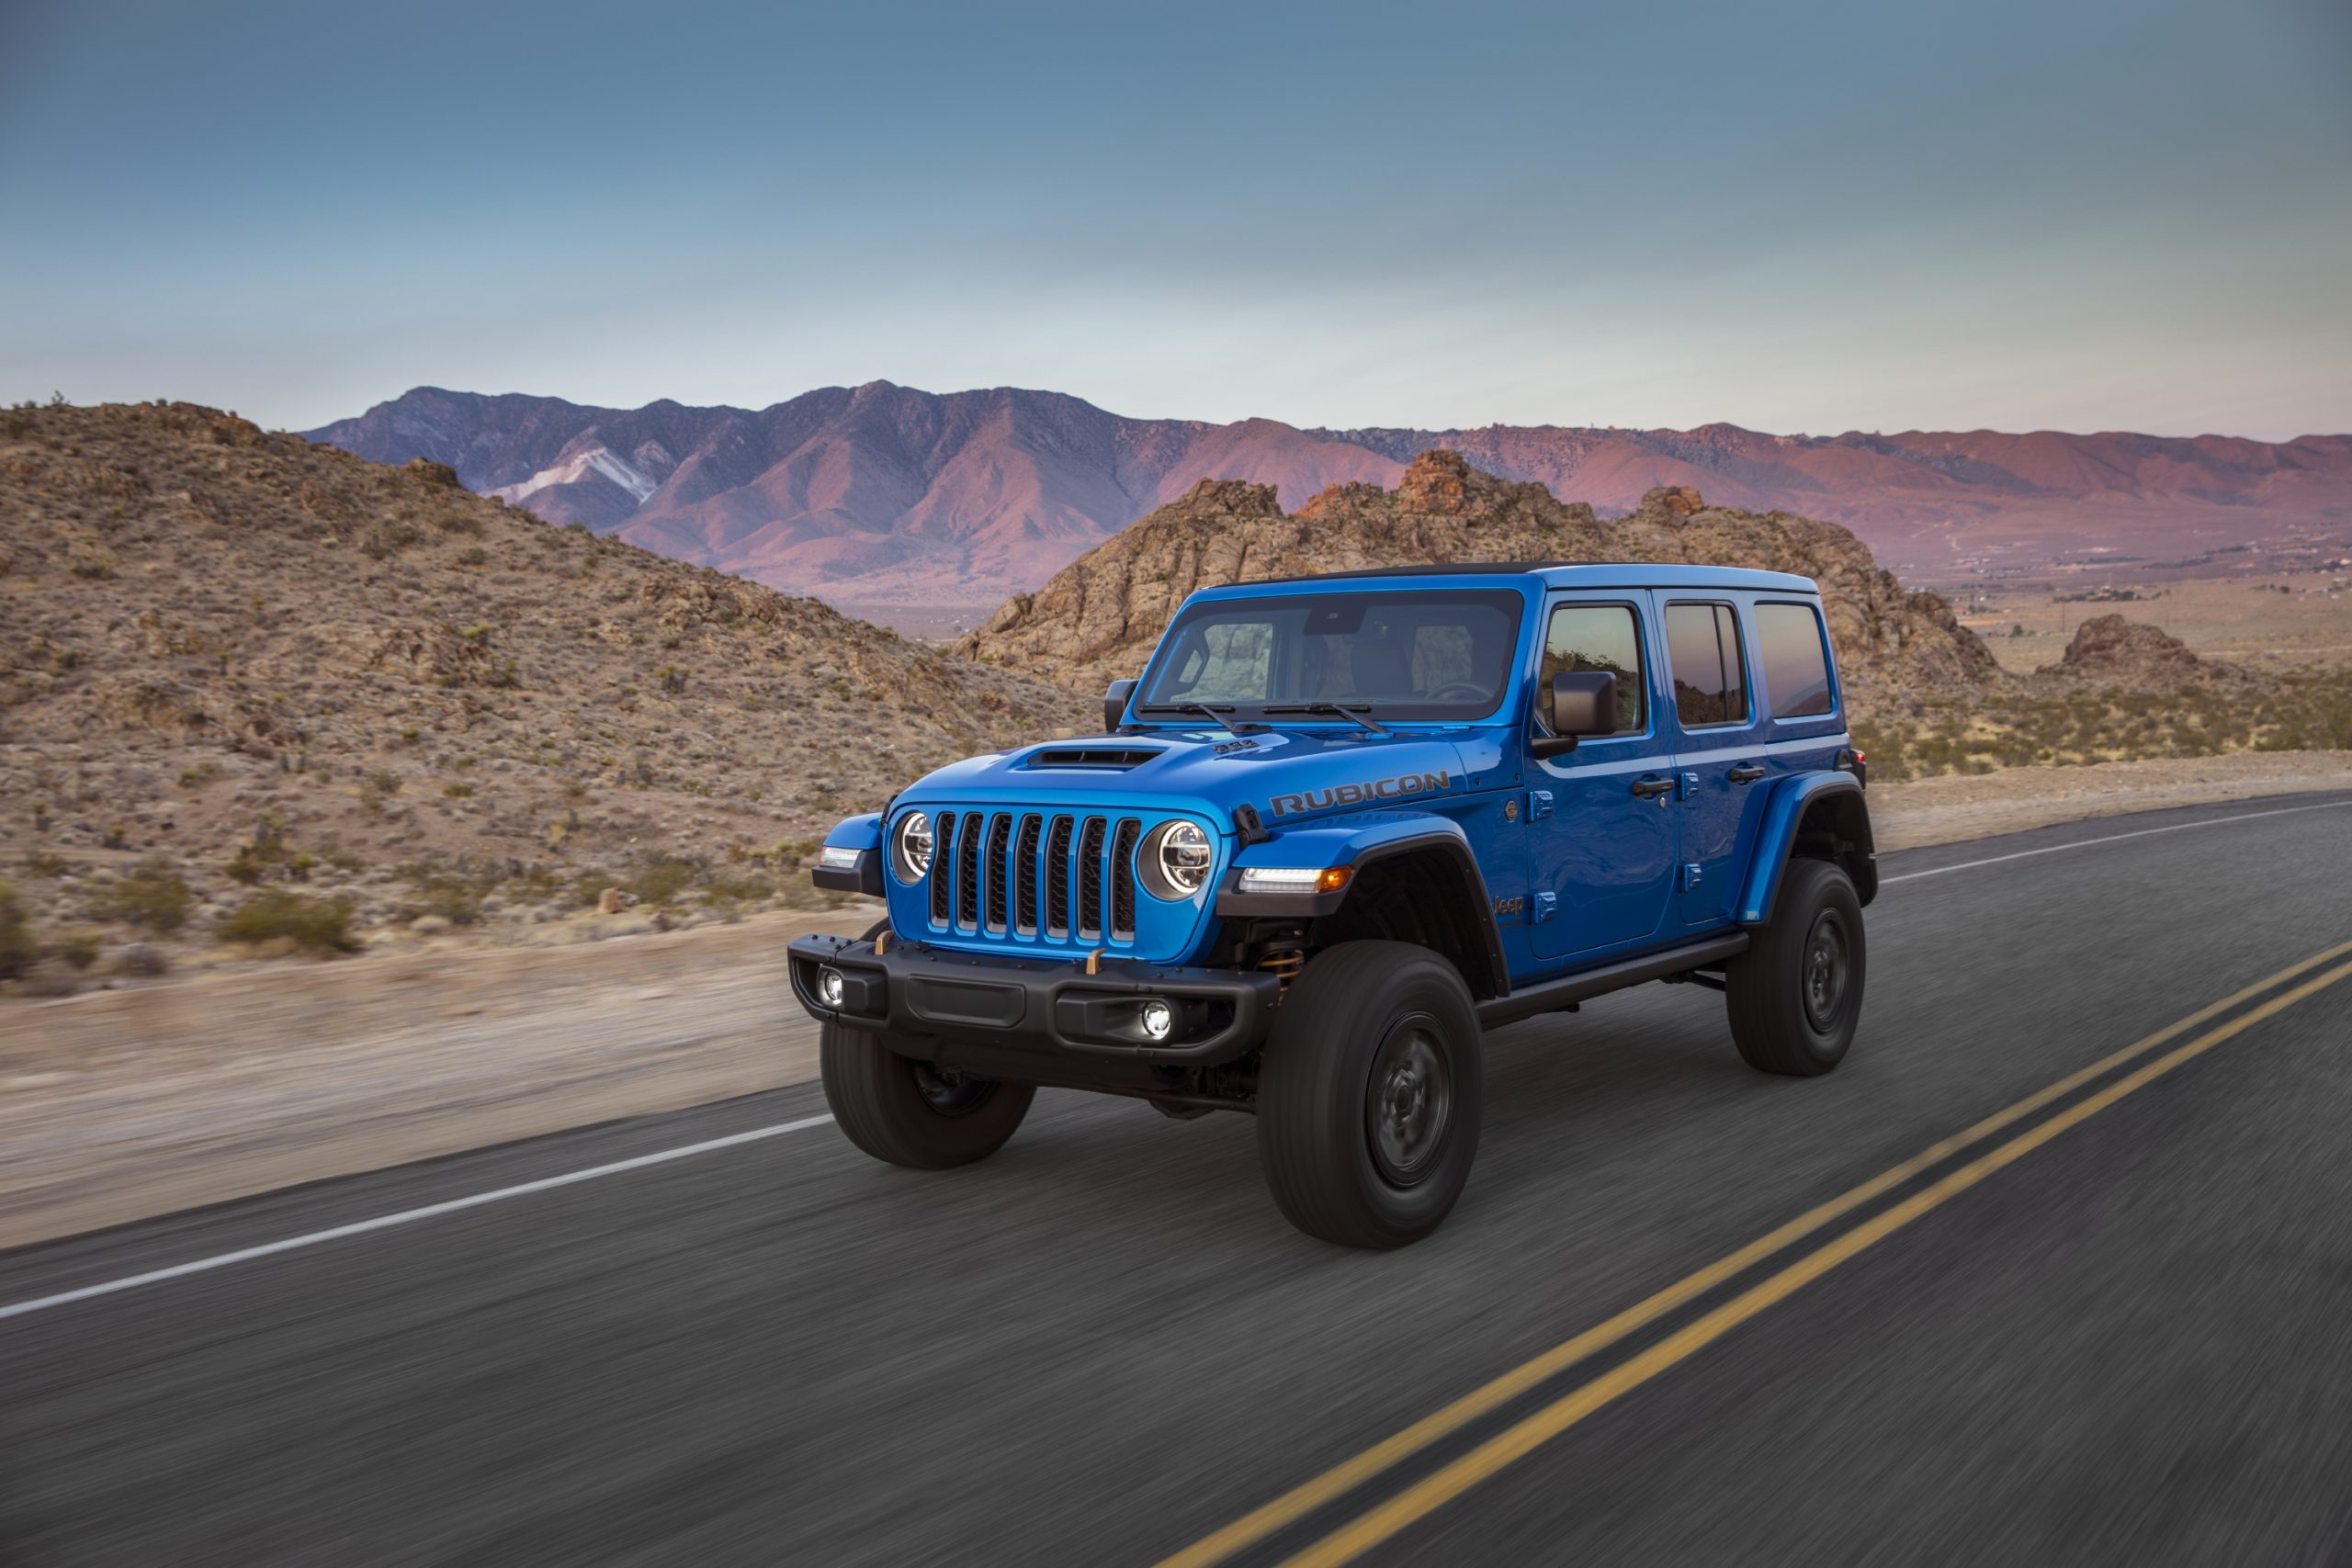 2021 Jeep Wrangler Rubicon 392 blue on road front three quarter